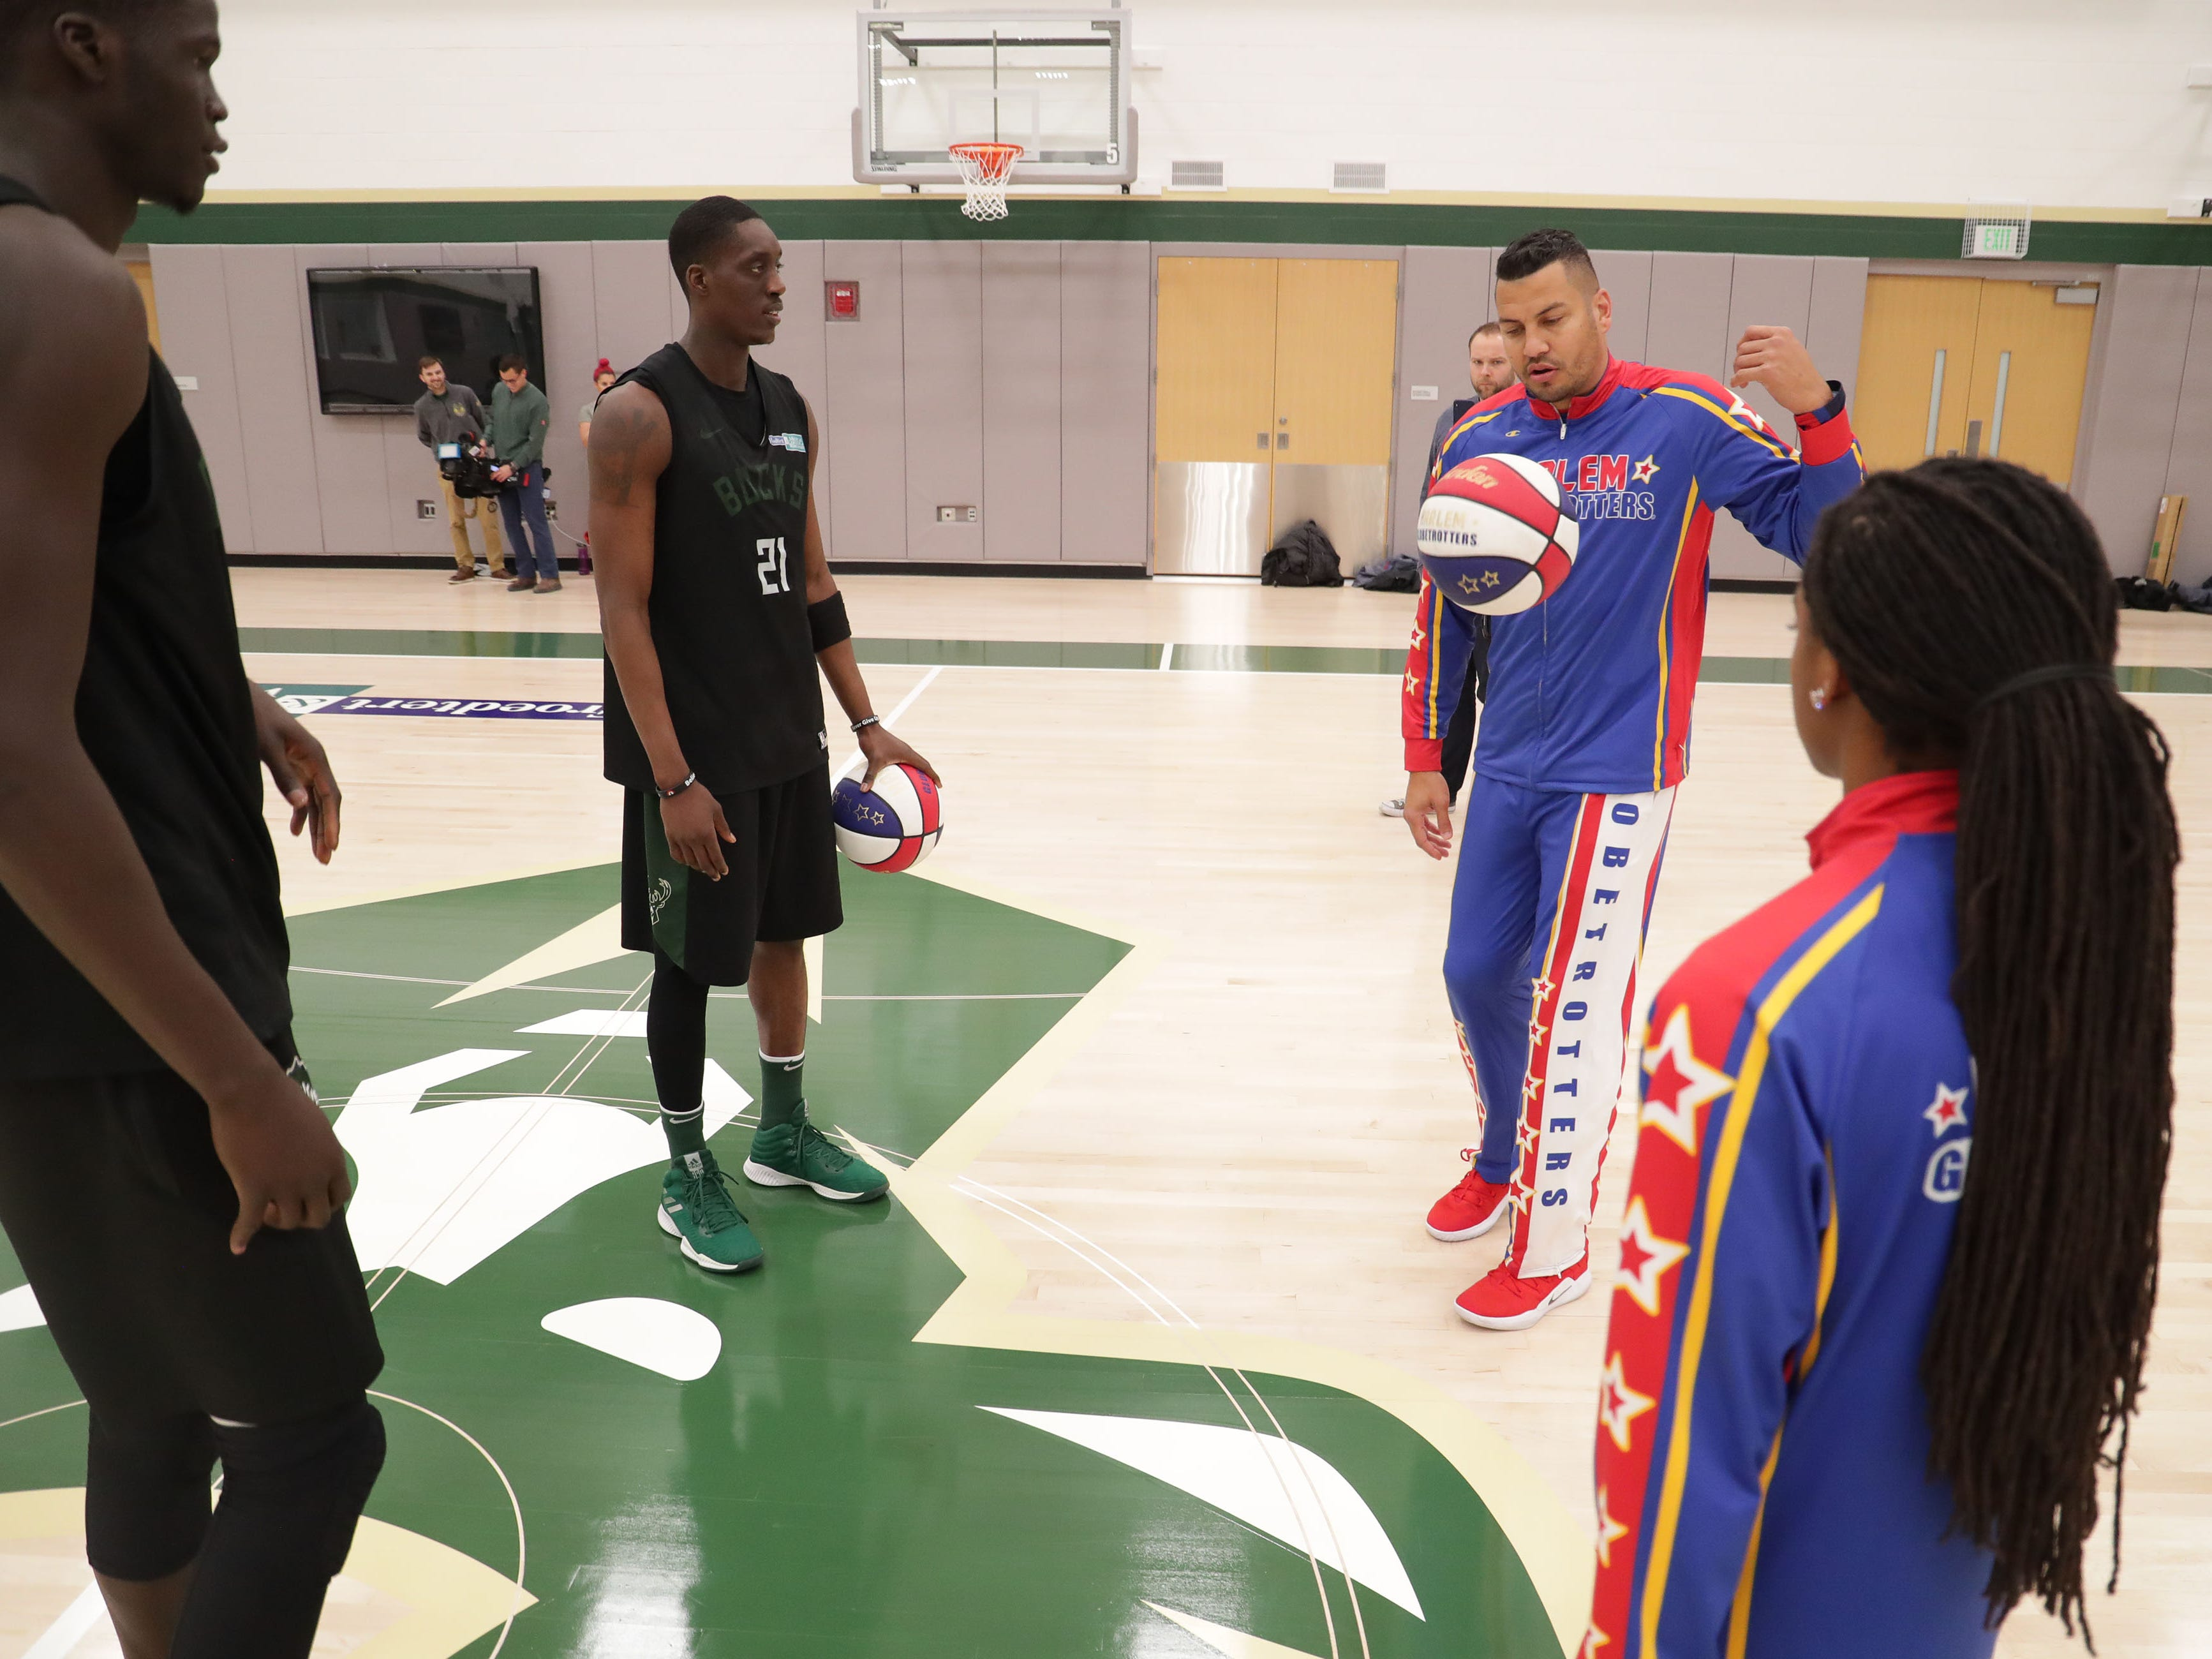 The Milwaukee Bucks' Thon Maker (left) and Tony Snell get a few pointers from the Harlem Globetrotters' Orlando El Gato Melendez and Lili Champ Thompson (far right).